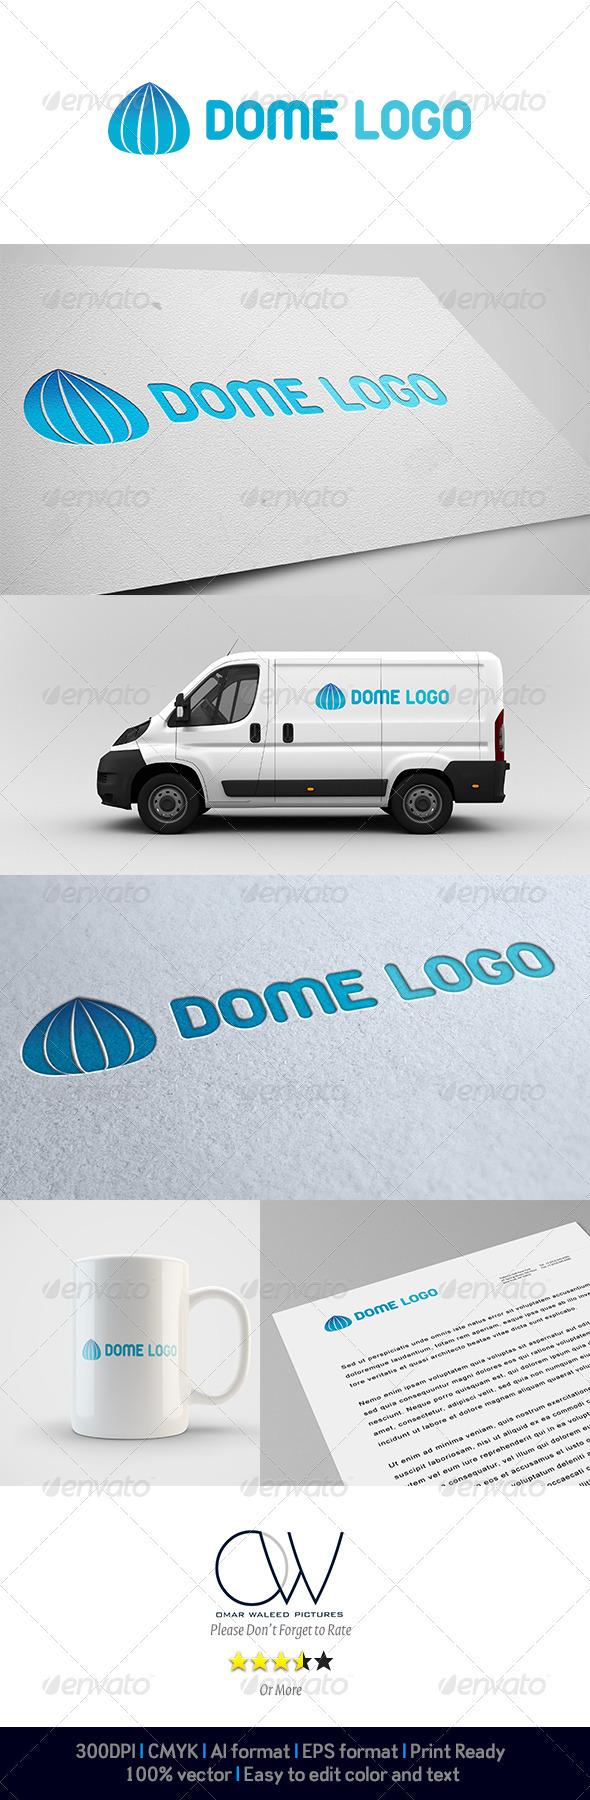 Dome Logo - Abstract Logo Templates